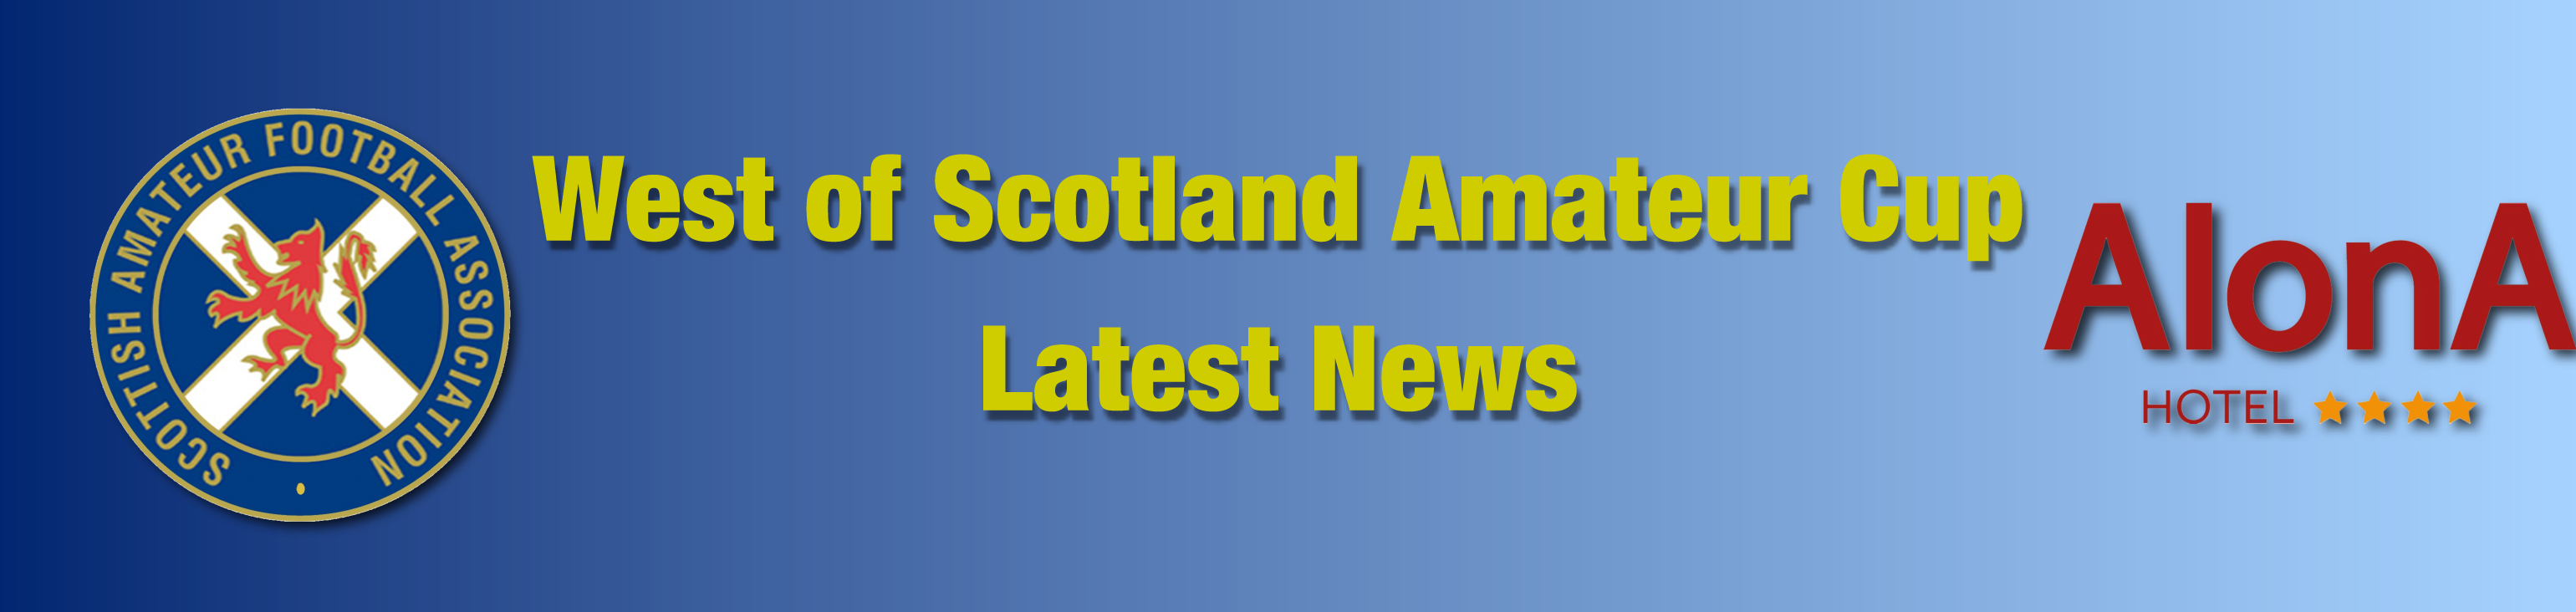 Alona Hotel West of Scotland Amateur Cup News